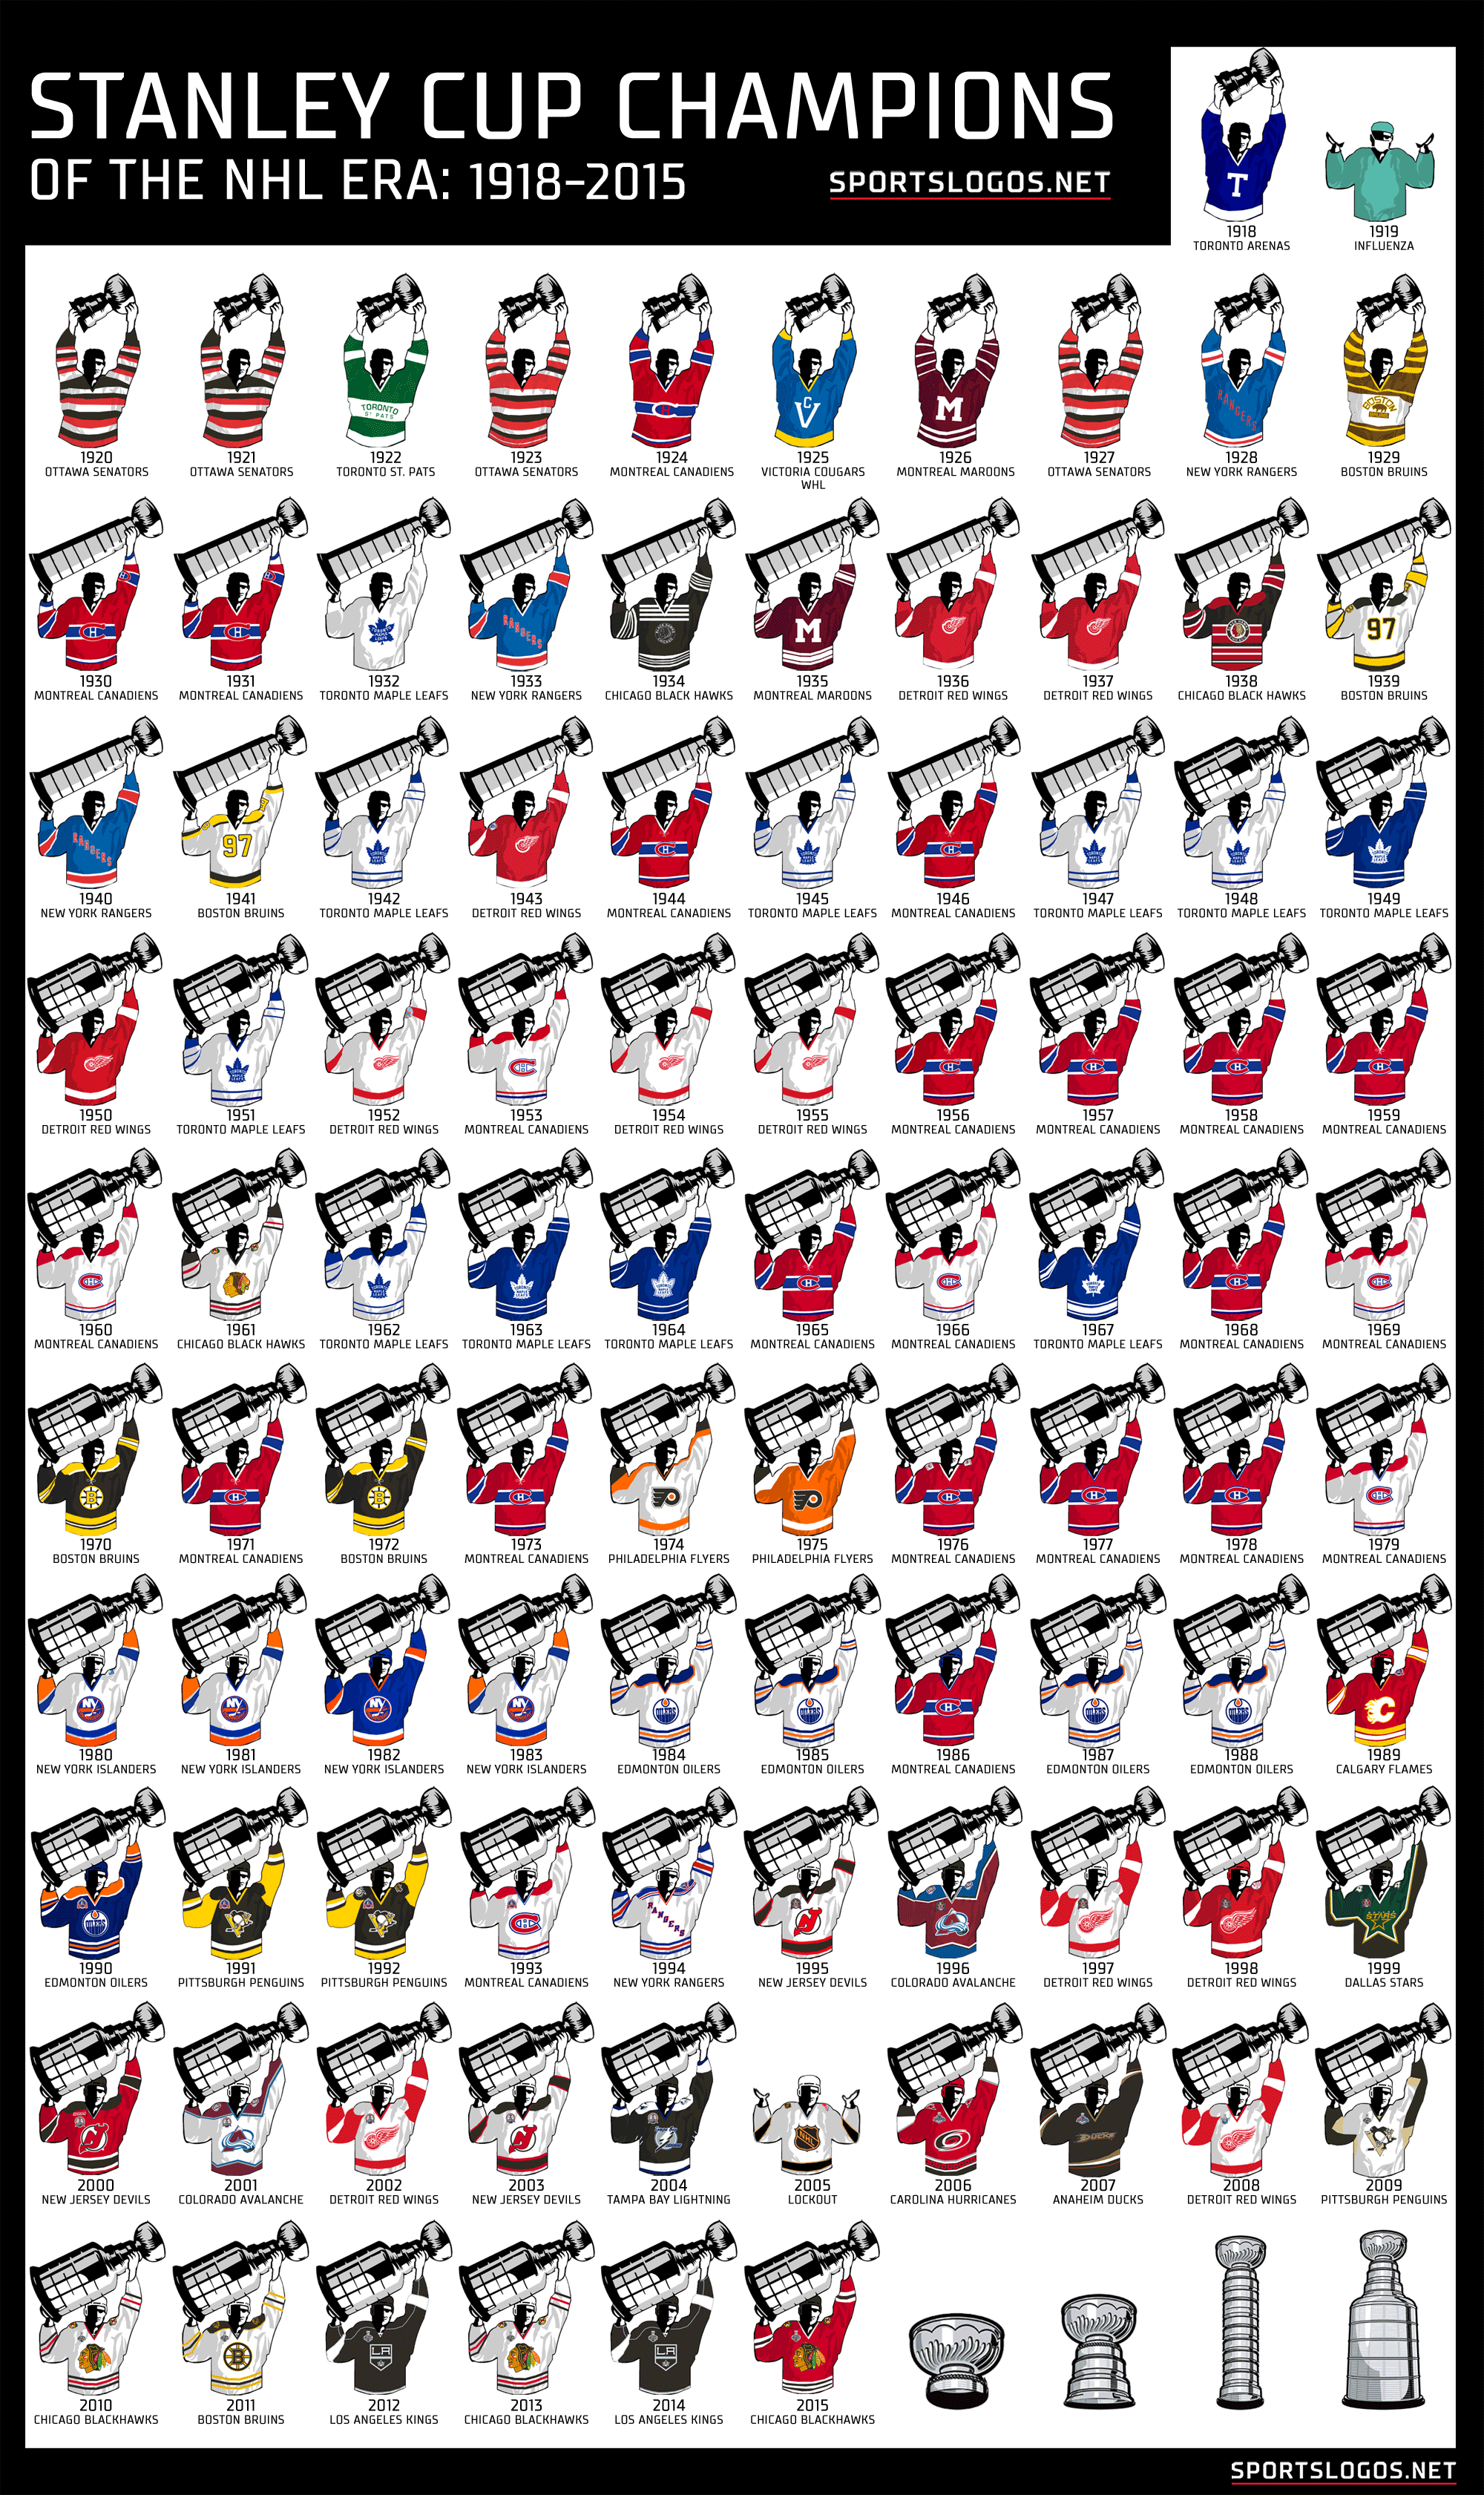 Every Stanley Cup Champion